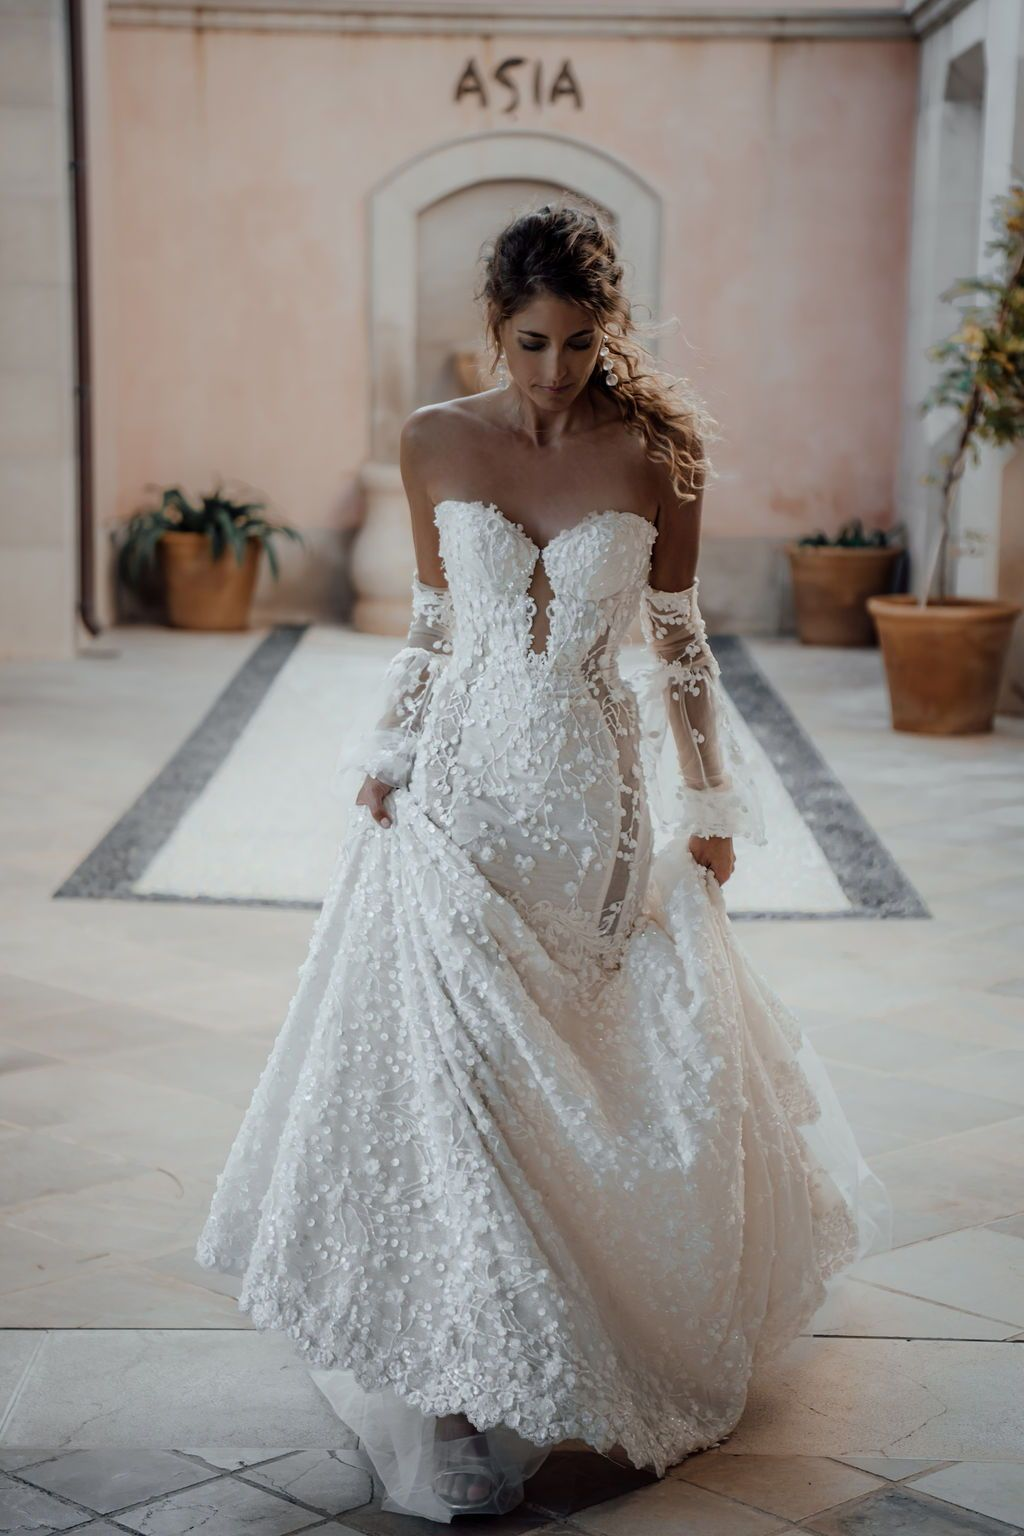 For a love of fashion, romance and glamour - our beautiful fitted